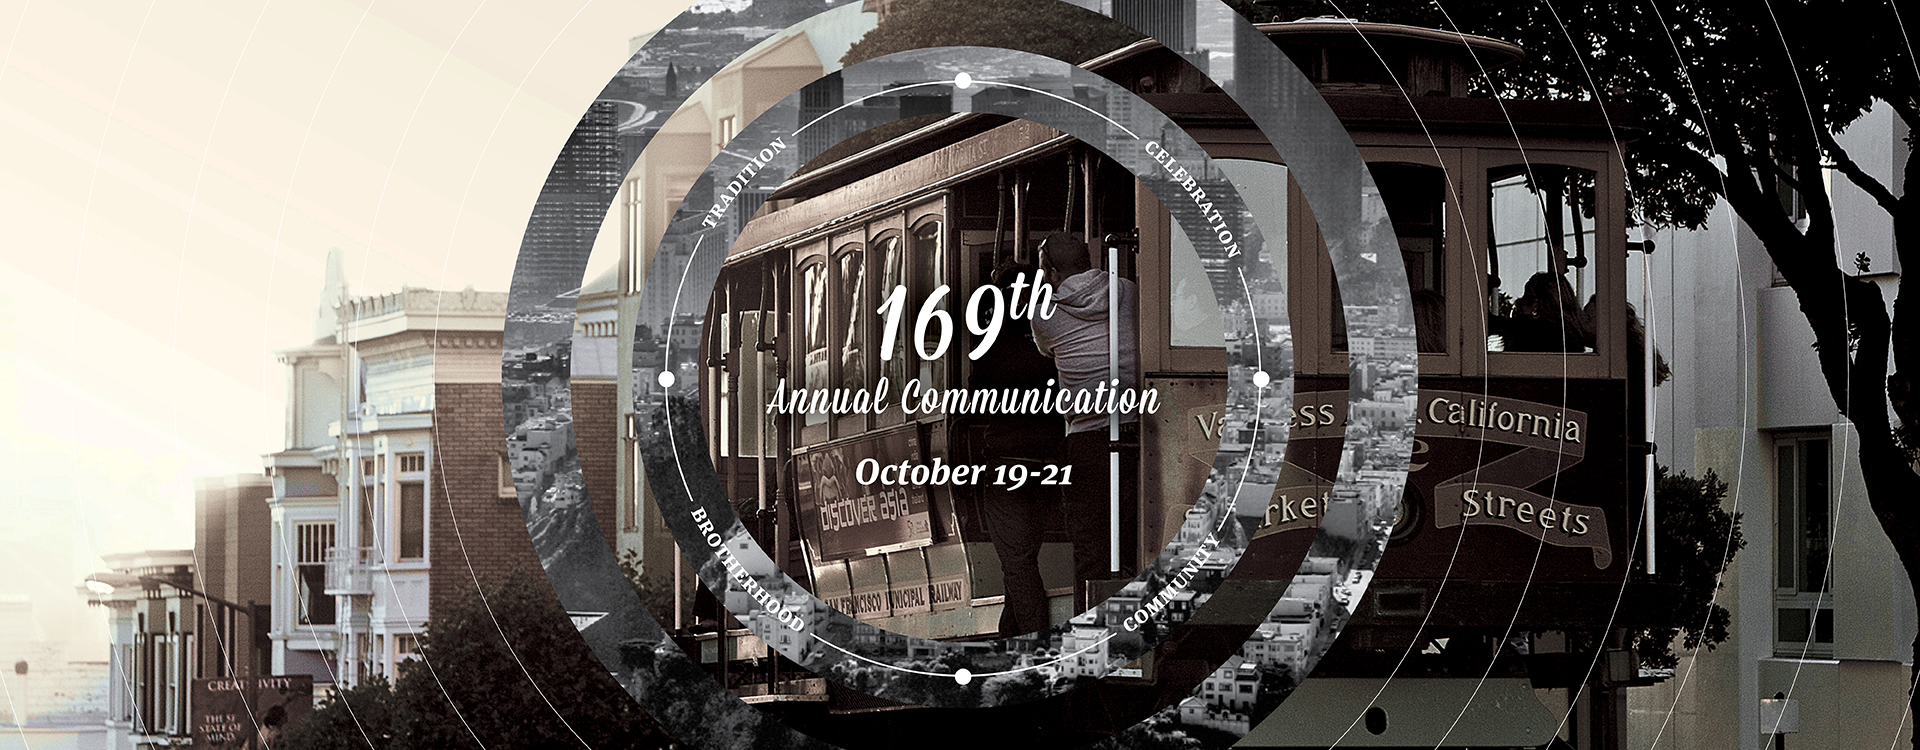 2018 Annual Communication